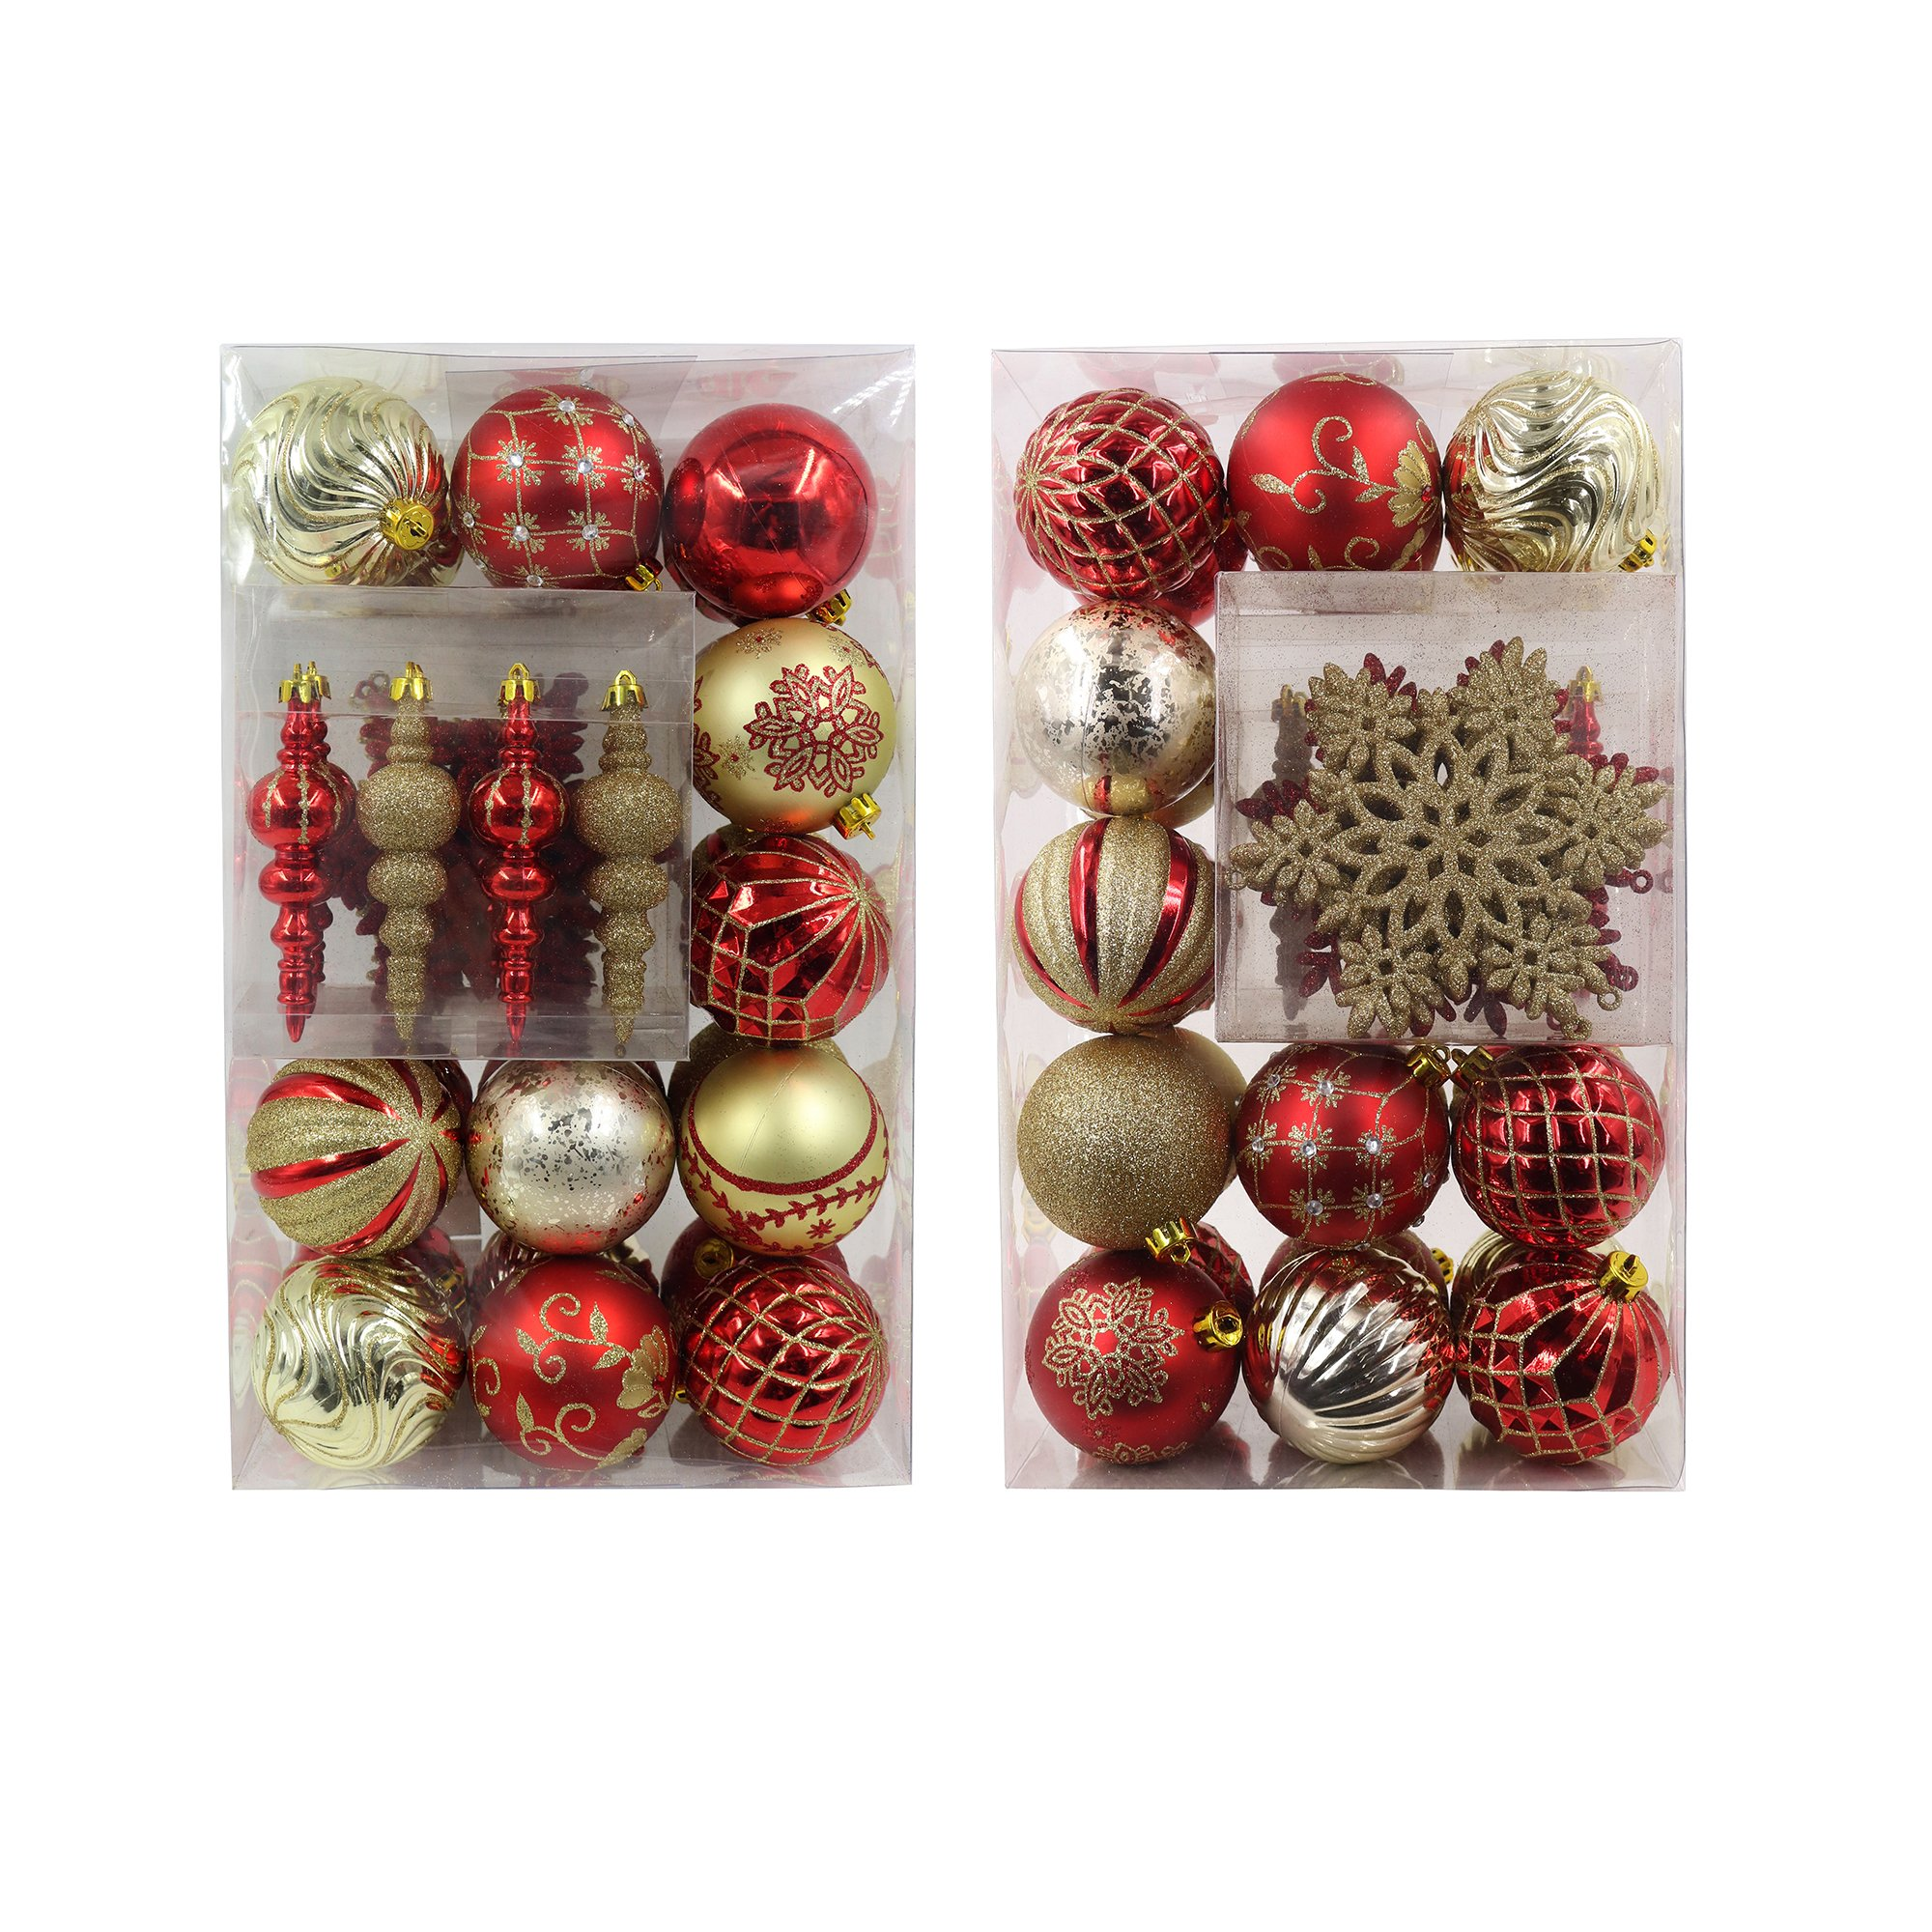 balls are equipped with metal hooks and easy to hang on tree package may show cosmetic damage - Red And Gold Christmas Ornaments